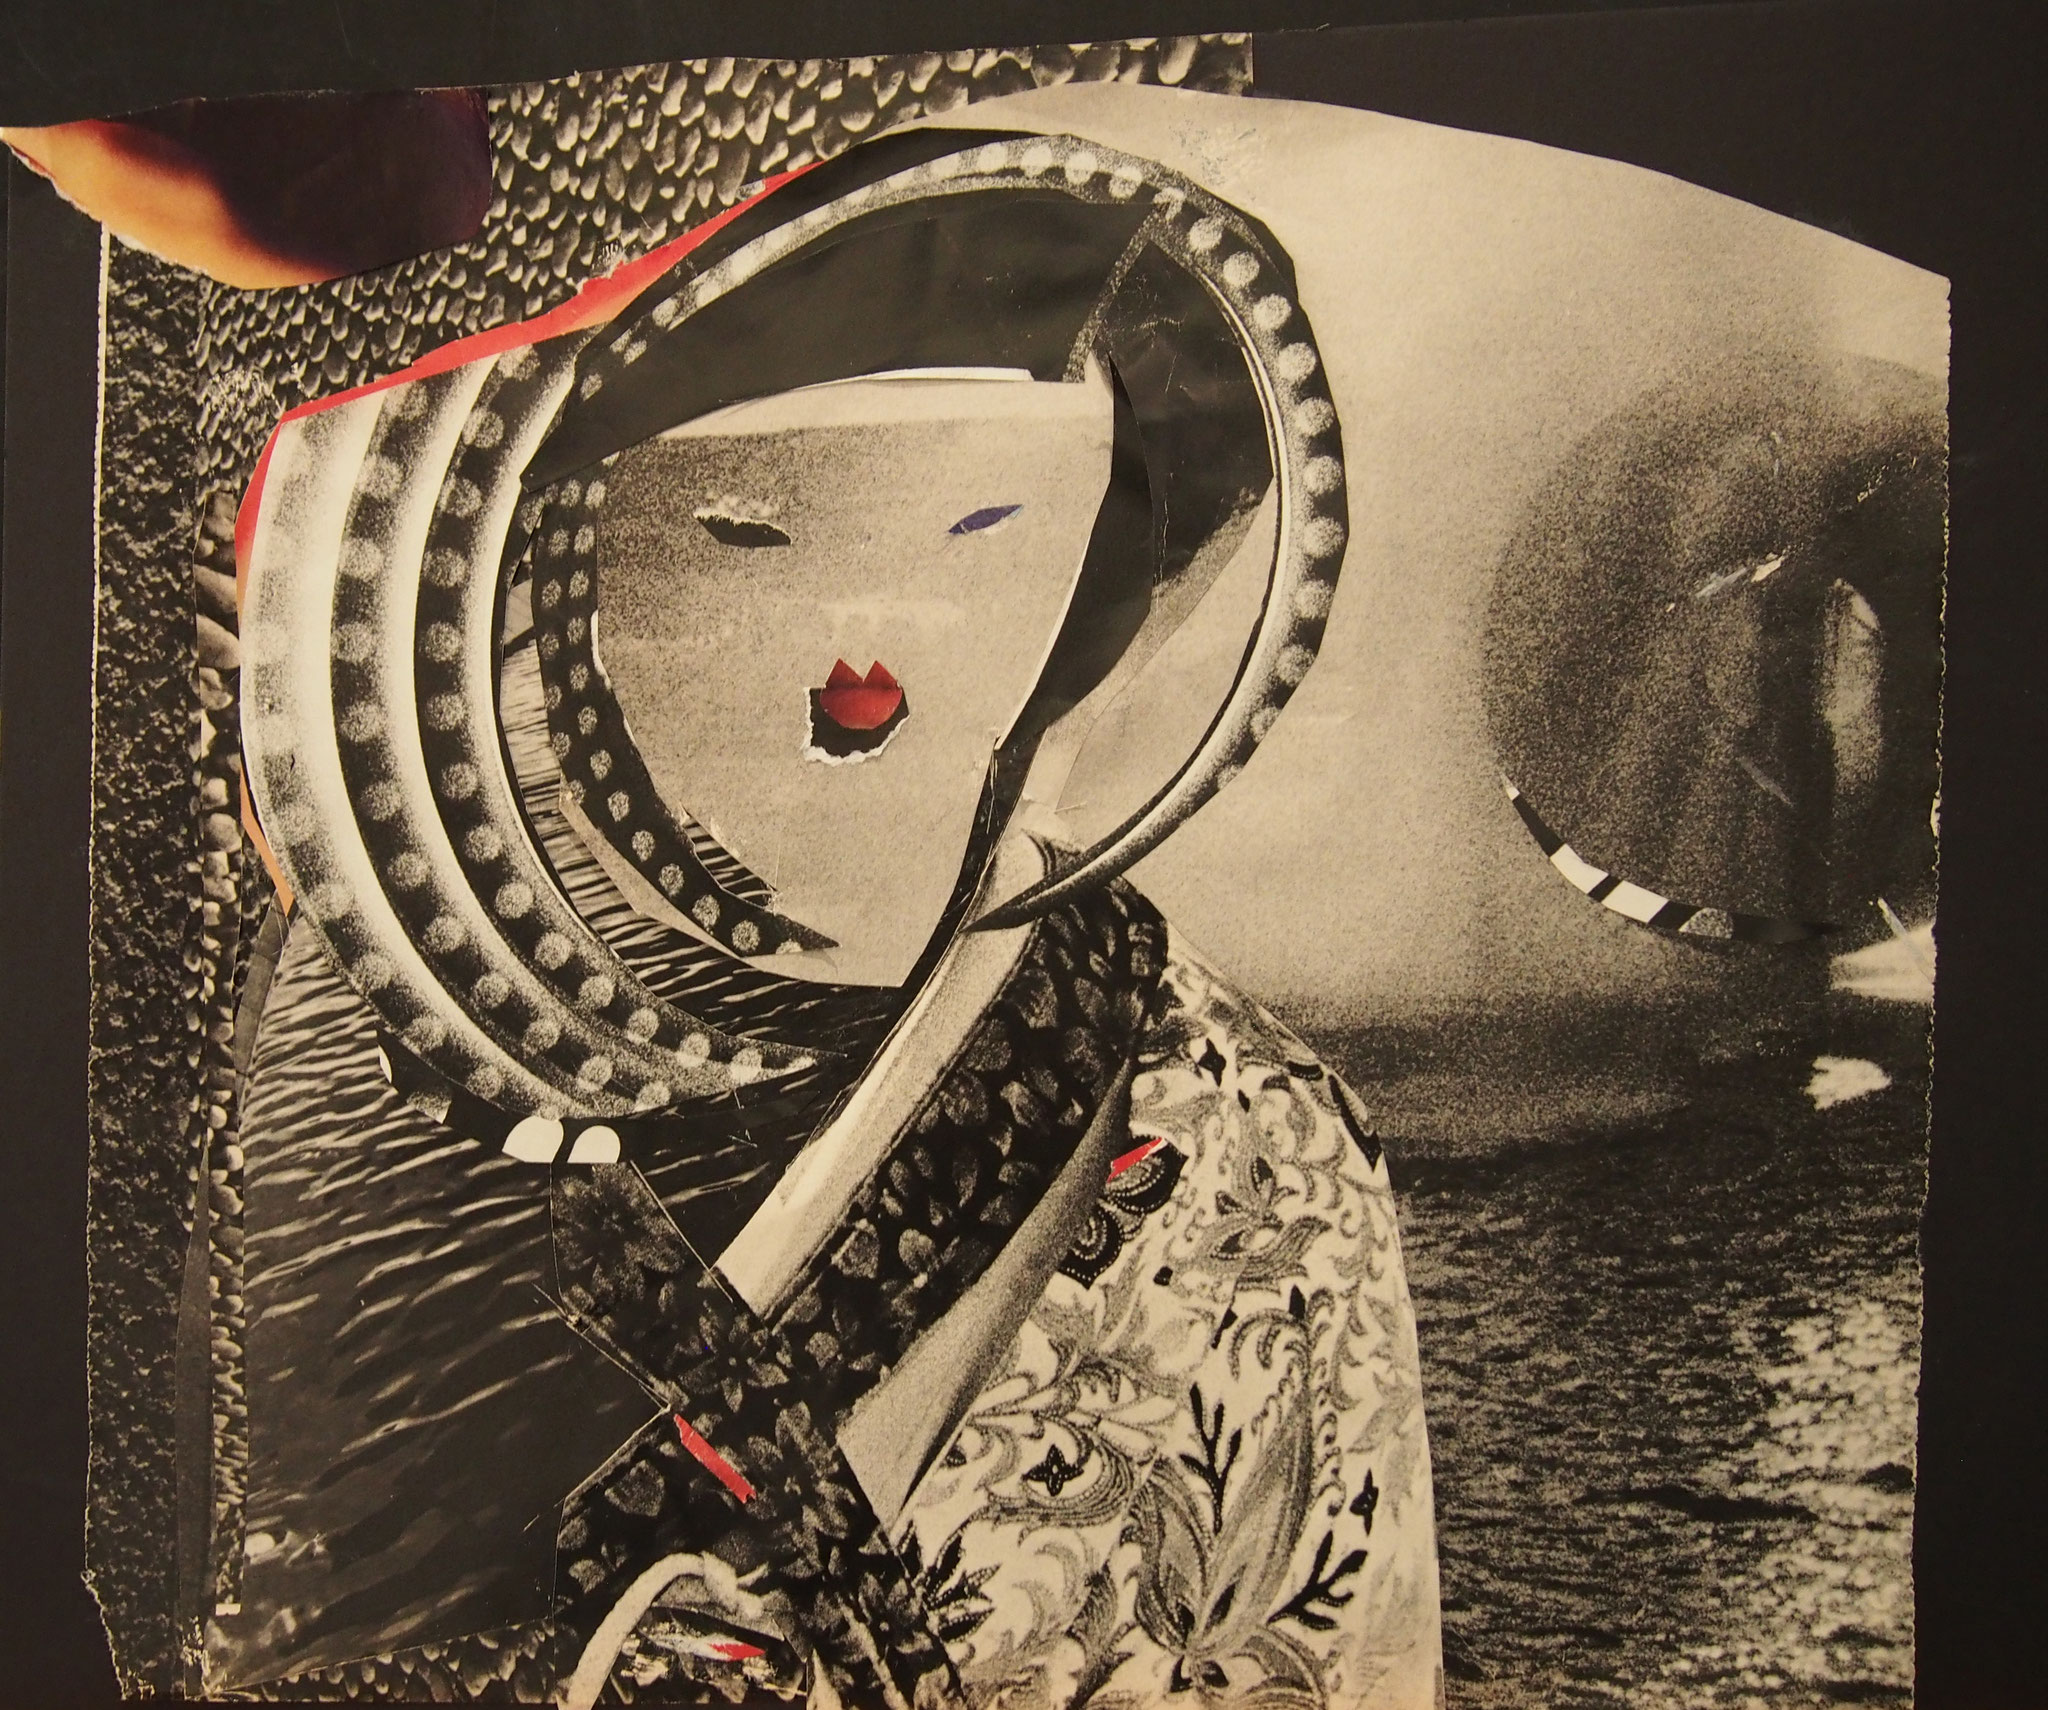 Collage by Zan Hewett